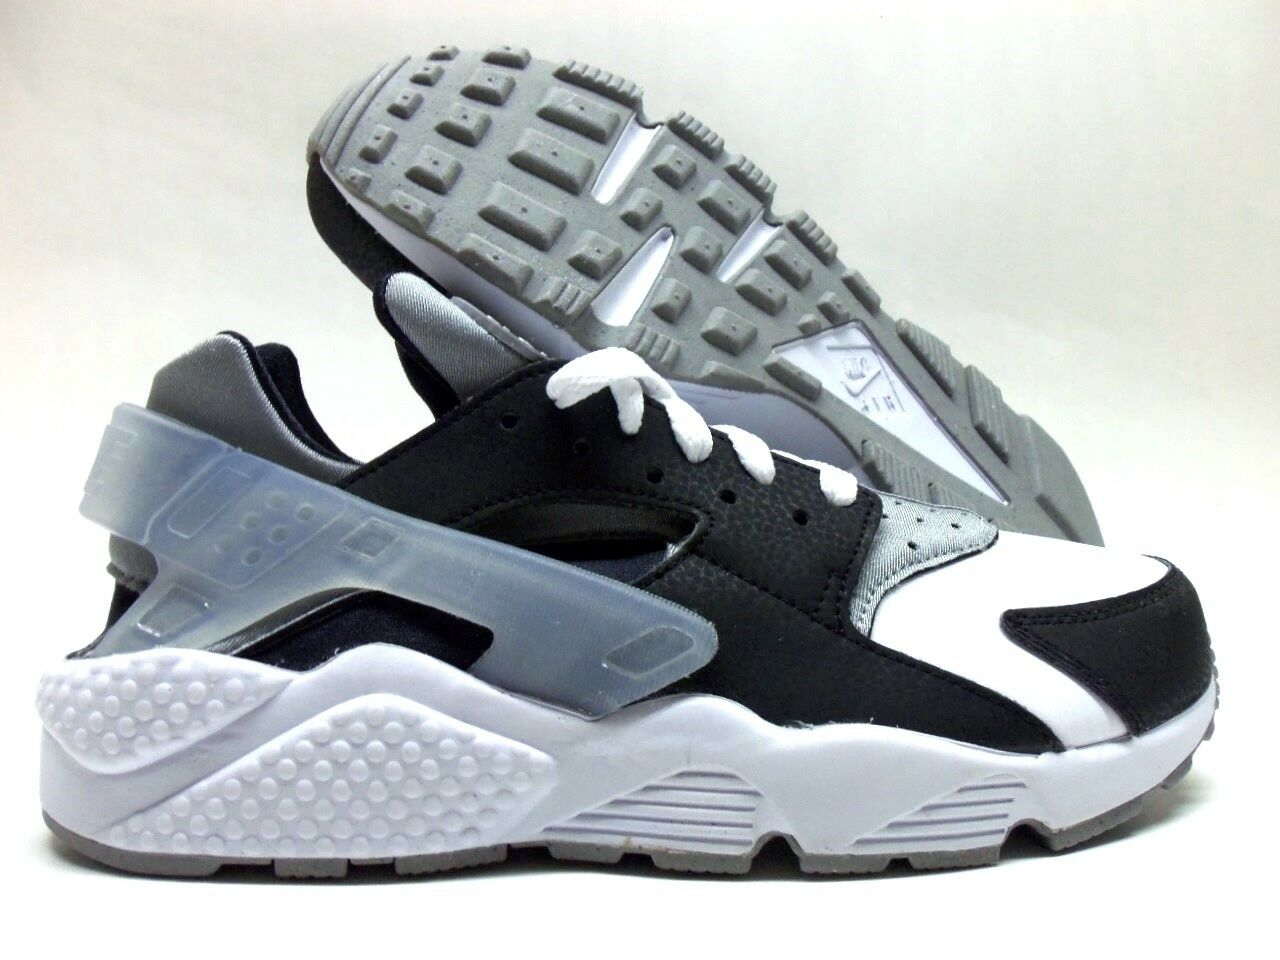 NIKE AIR AIR AIR HUARACHE PREMIUM ID BLACK WHITE-COOL GREY SIZE WOMEN'S 8.5 2283de